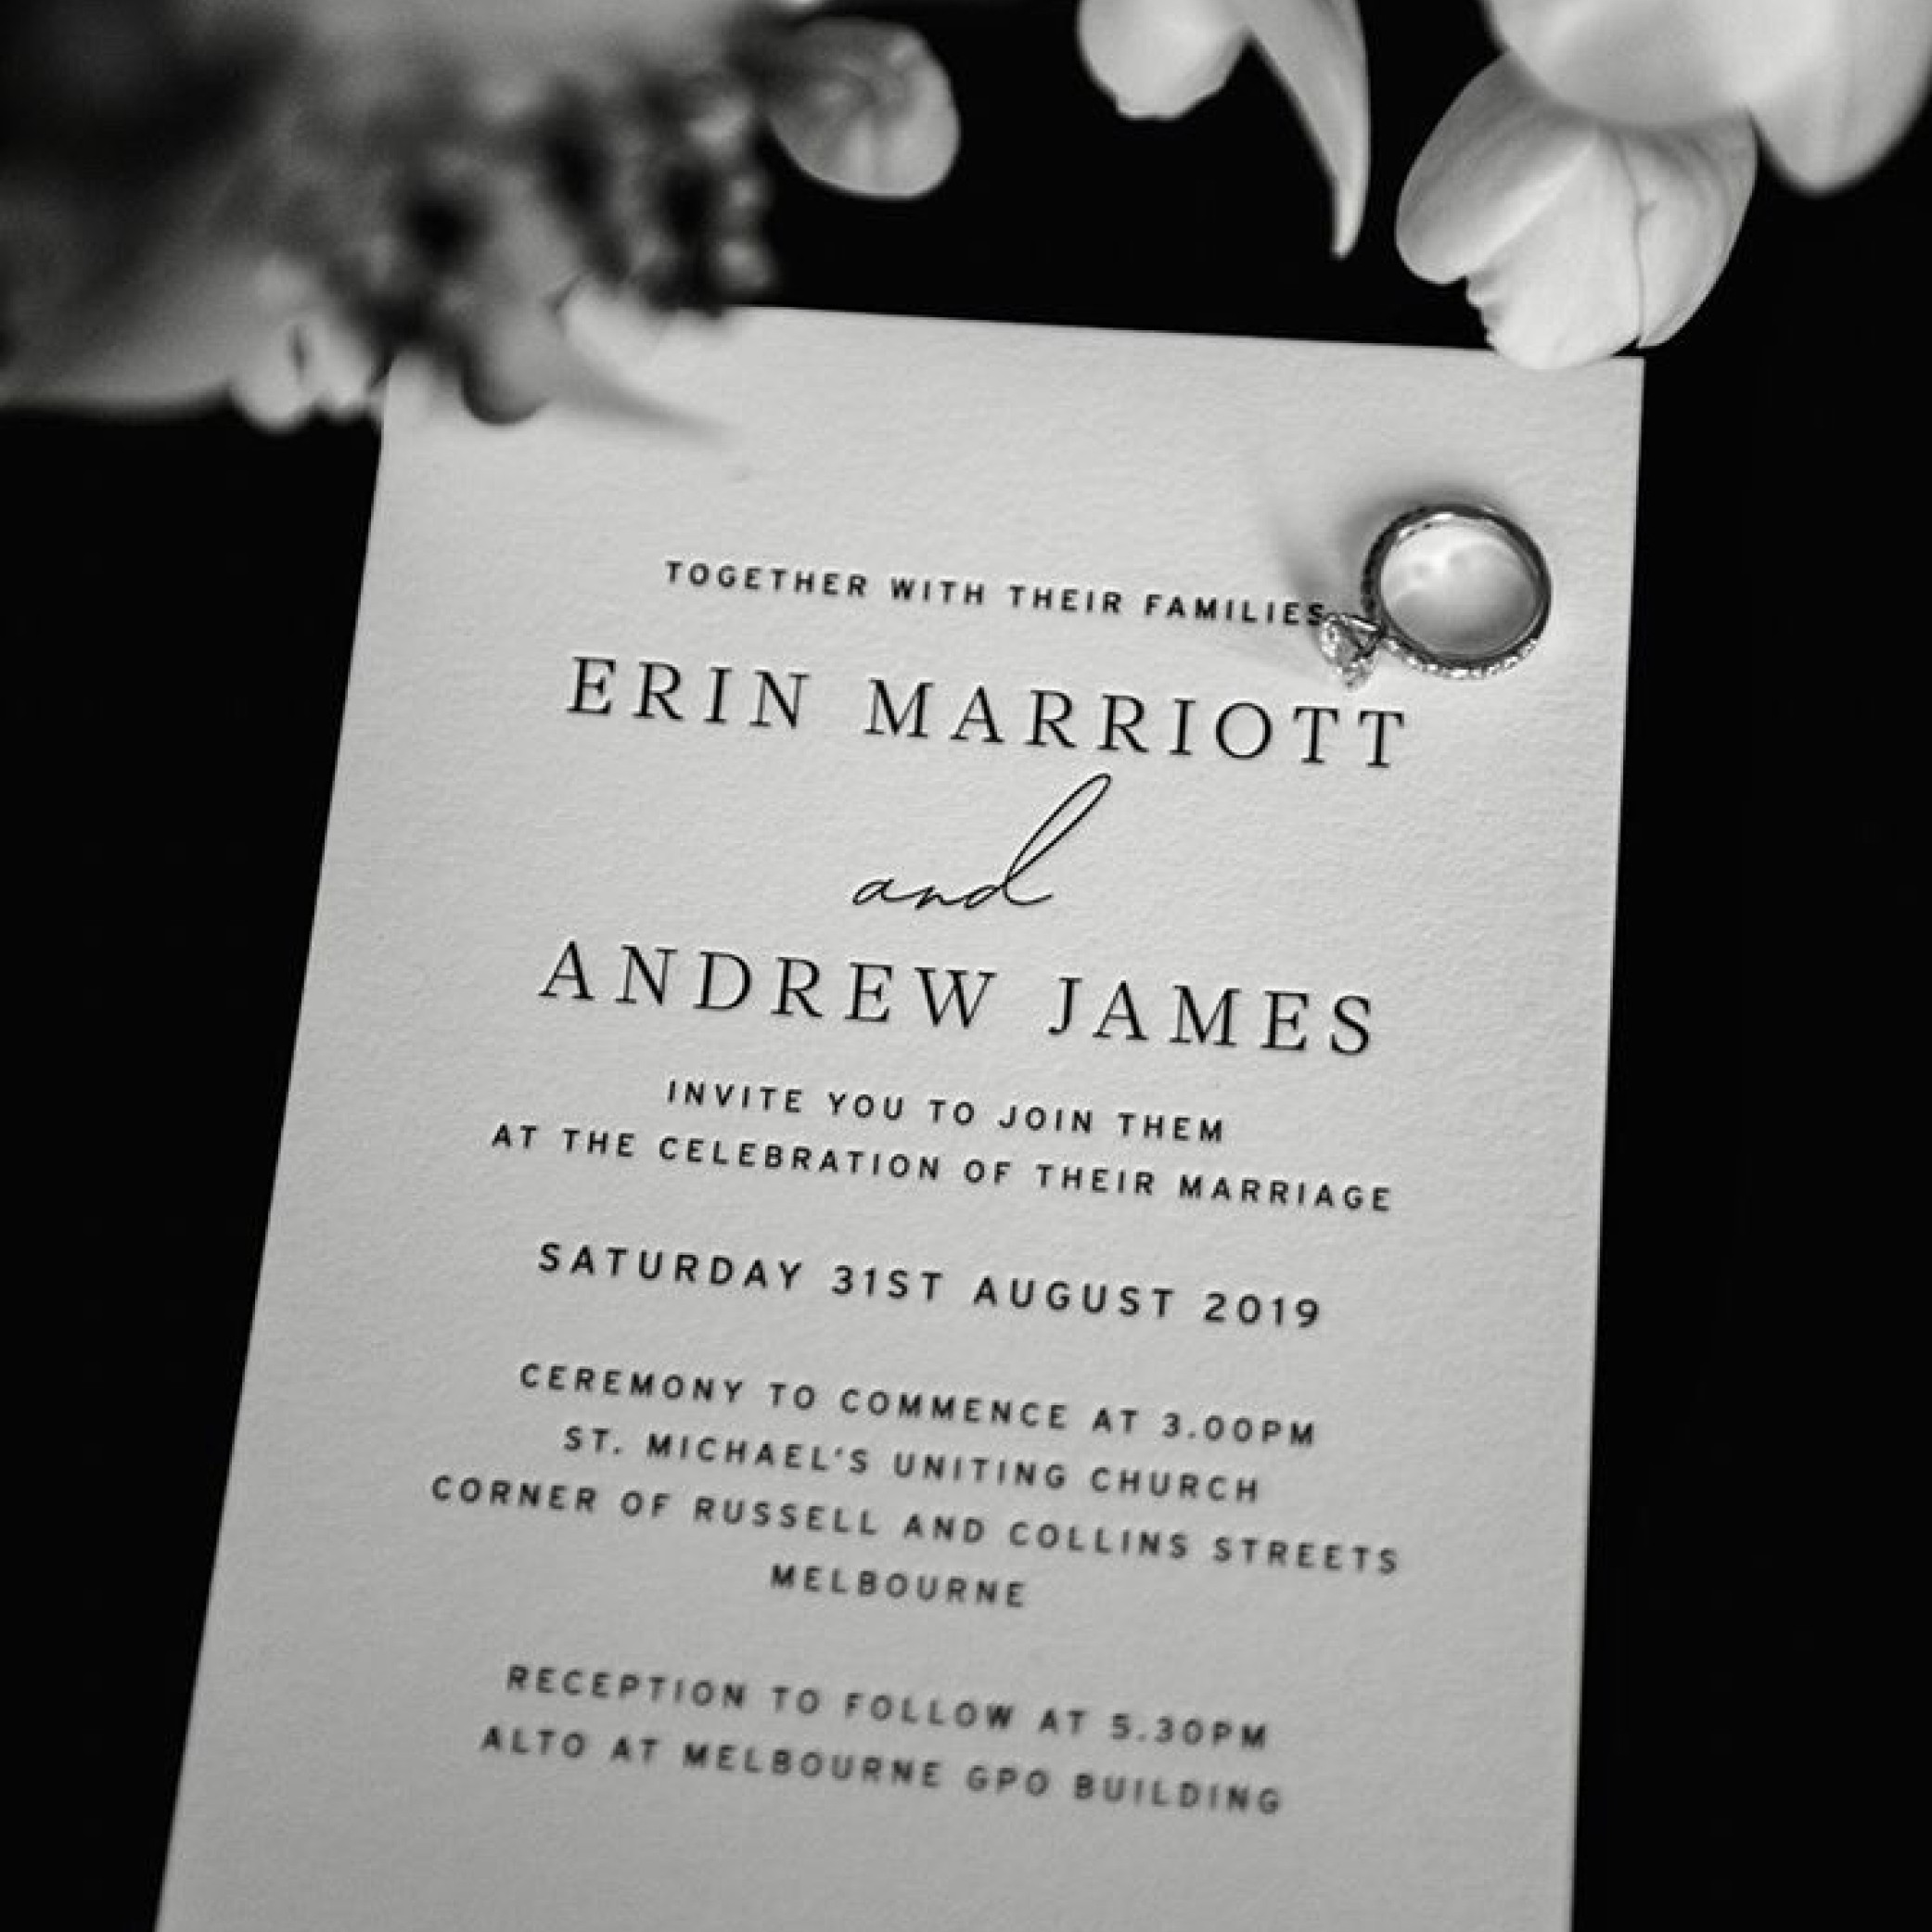 Wedding Invitations - MAIN INVITATION | Erin + Andrew